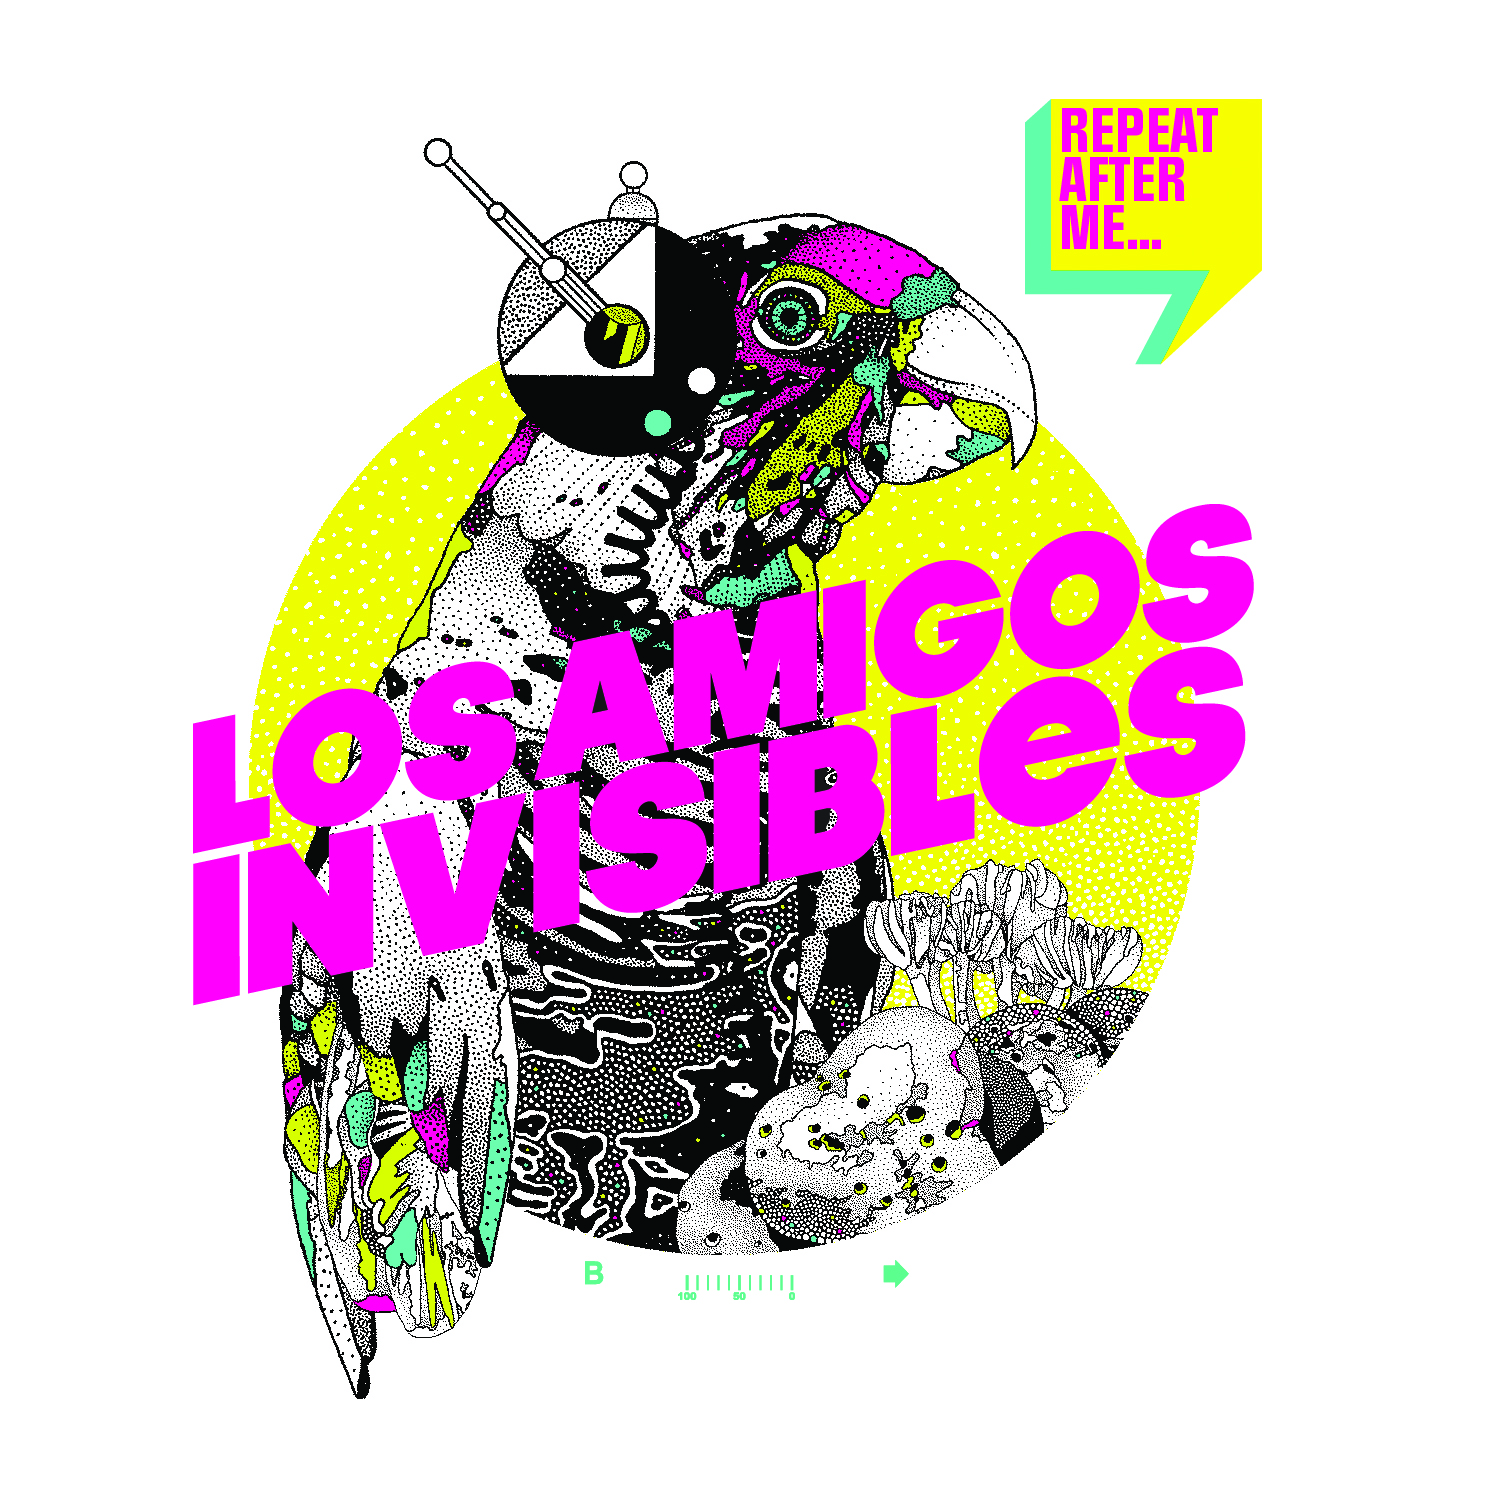 Los Amigos Invisibles - Repeat After Me (2013)